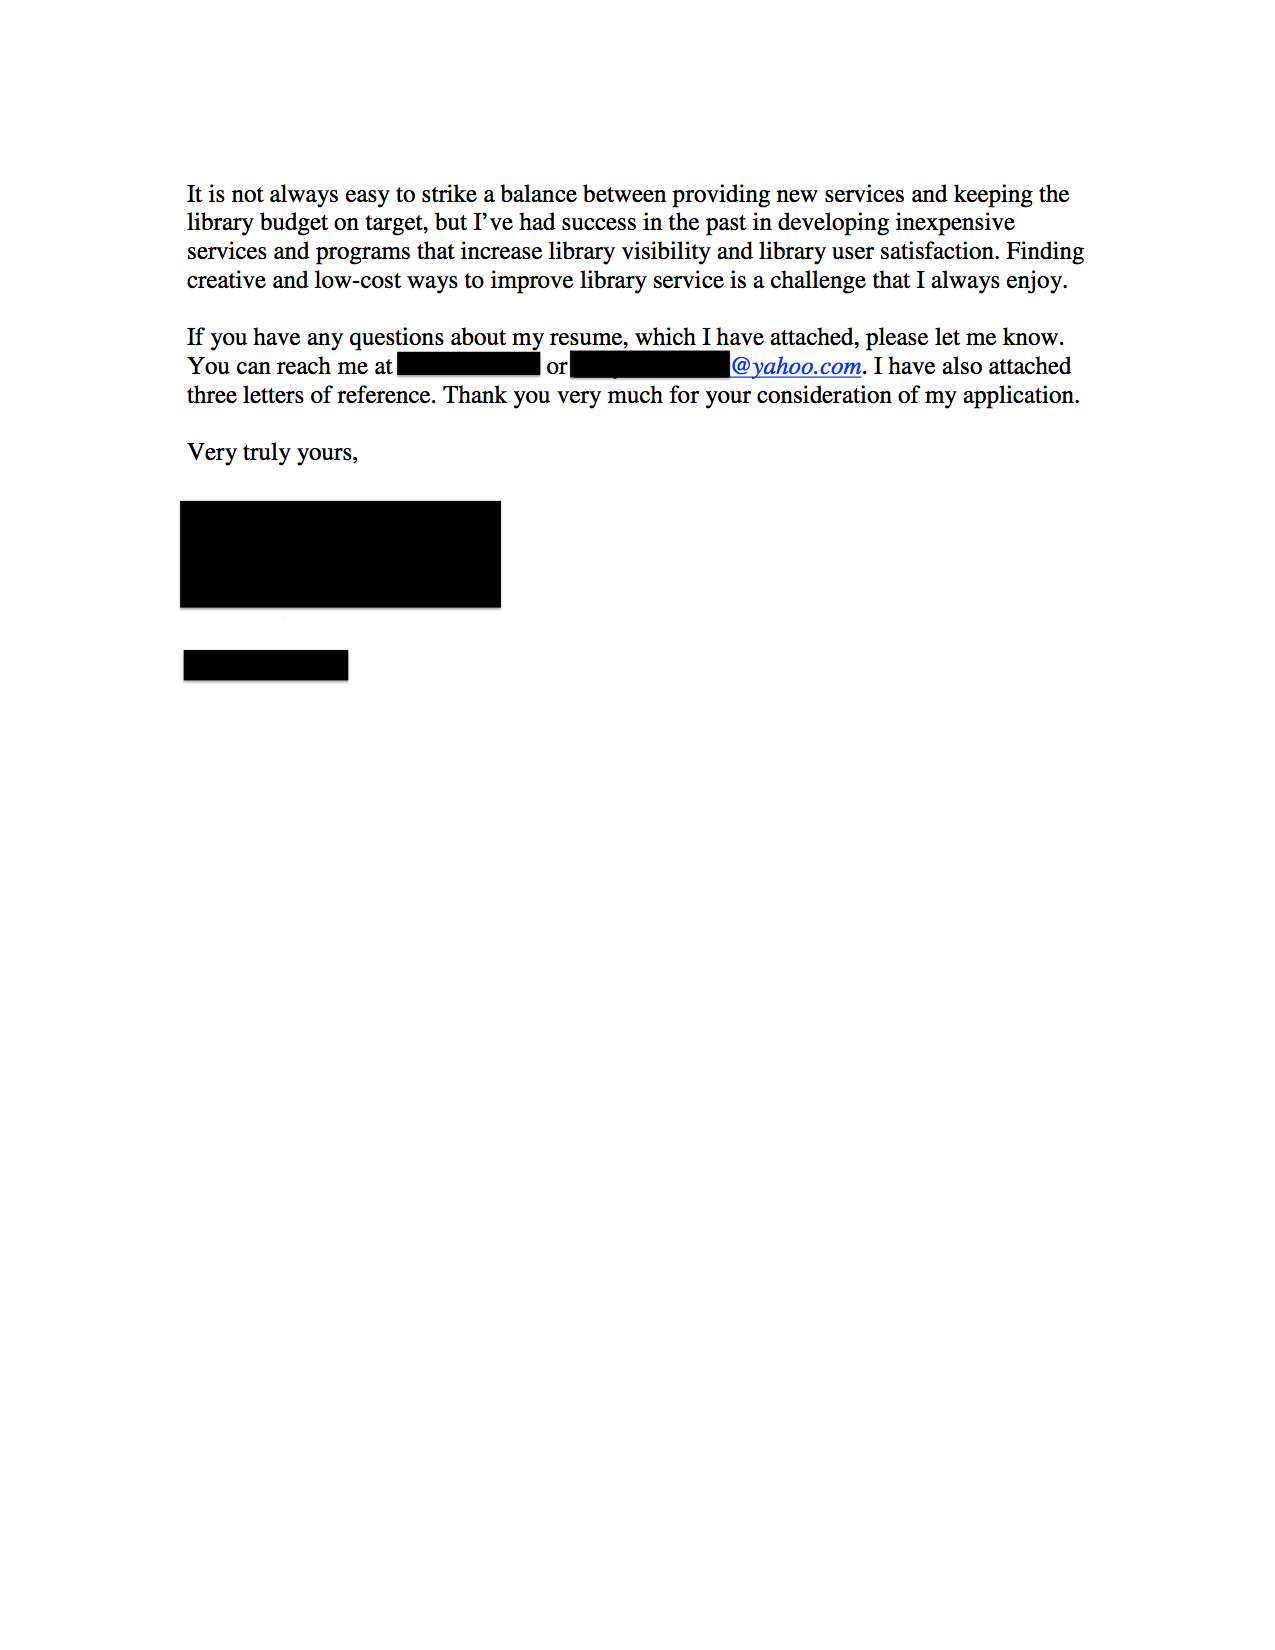 Email Cover Letter Samples - Job Searching - About com